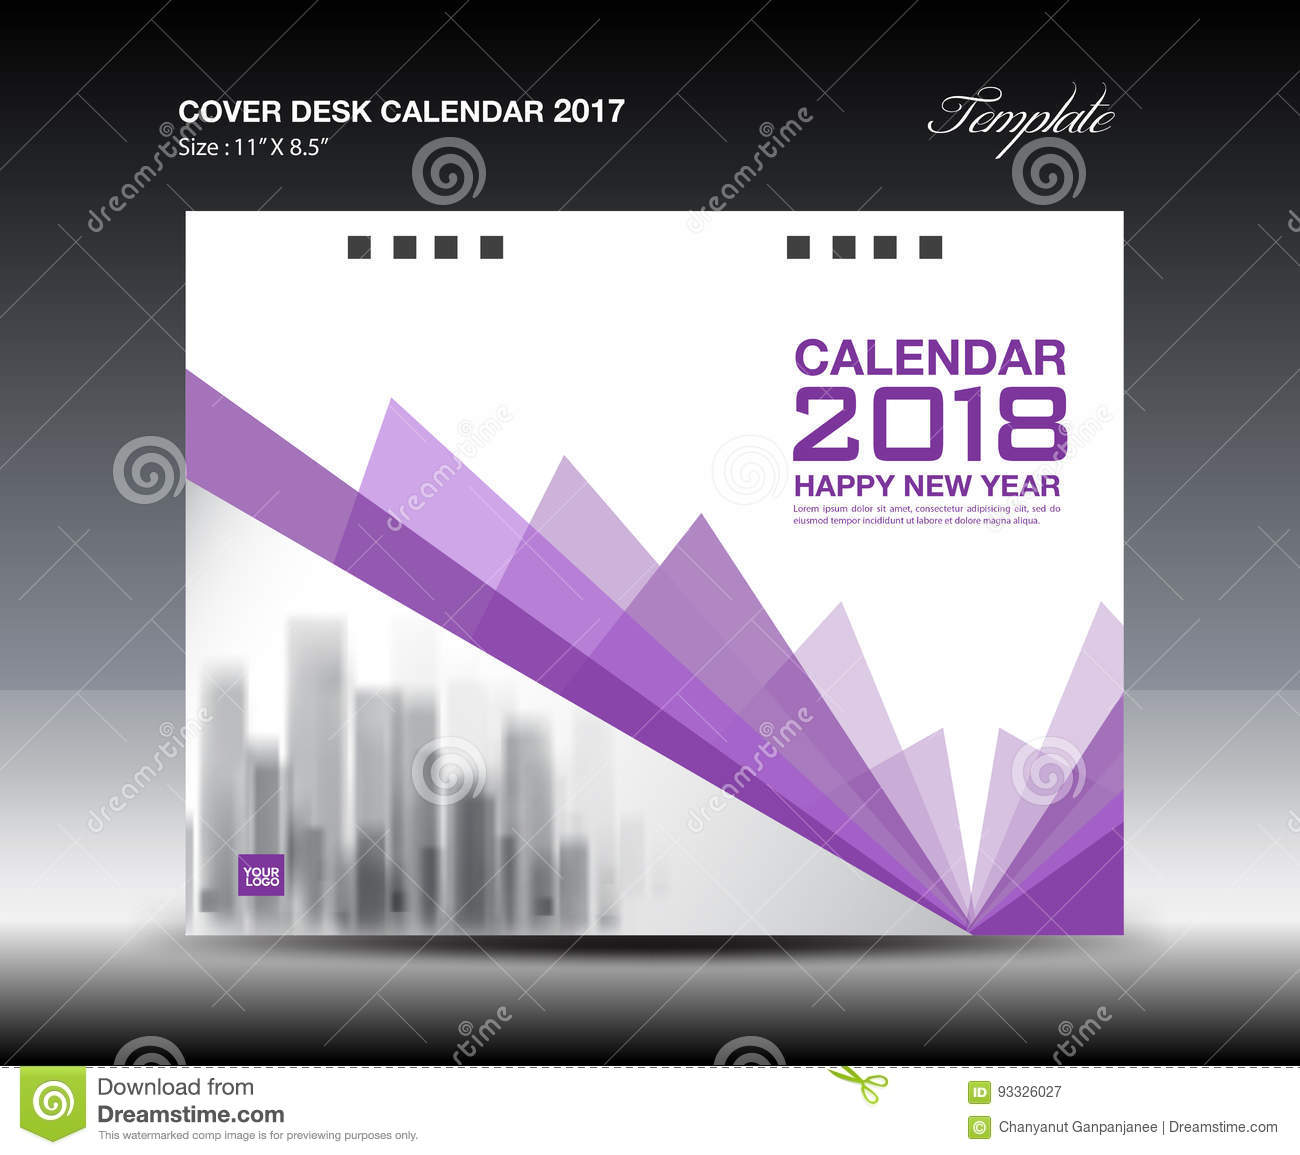 Calendar Cover Page Design : Purple cover desk calendar design polygon background